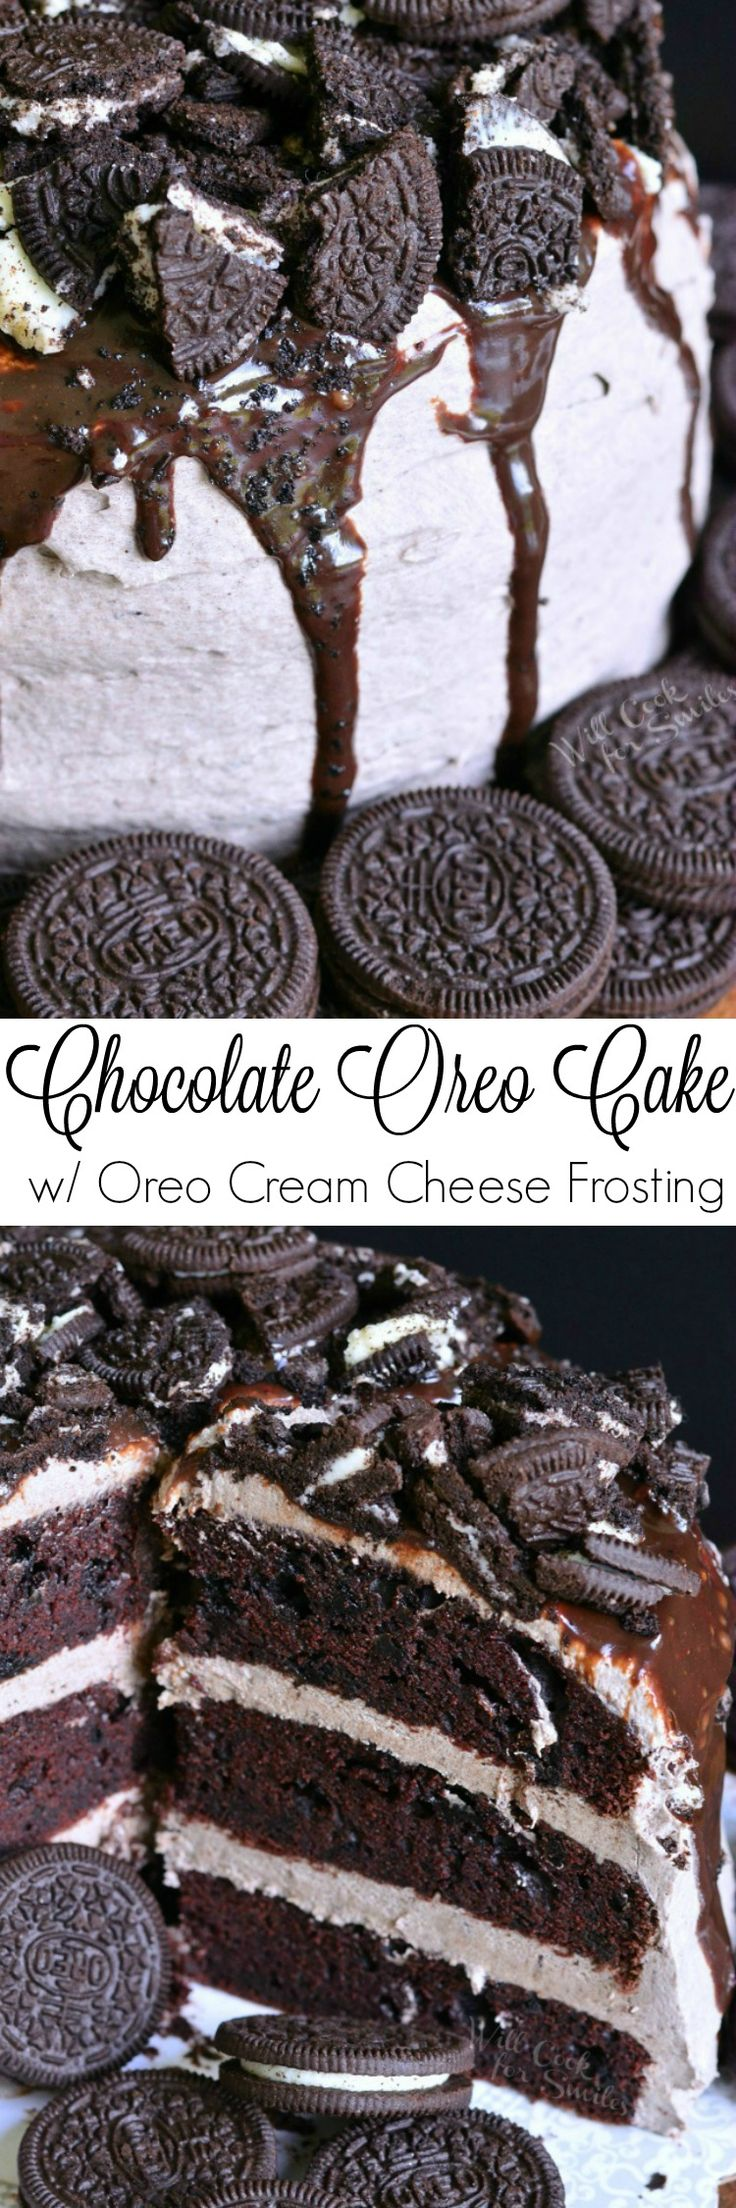 Chocolate Oreo Cake. An unbelievable, absolutely HEAVENLY Oreo cake baked with Oreo cookies inside and then filled and frosted with smooth Oreo Cookie Cream… (Oreo Cake)